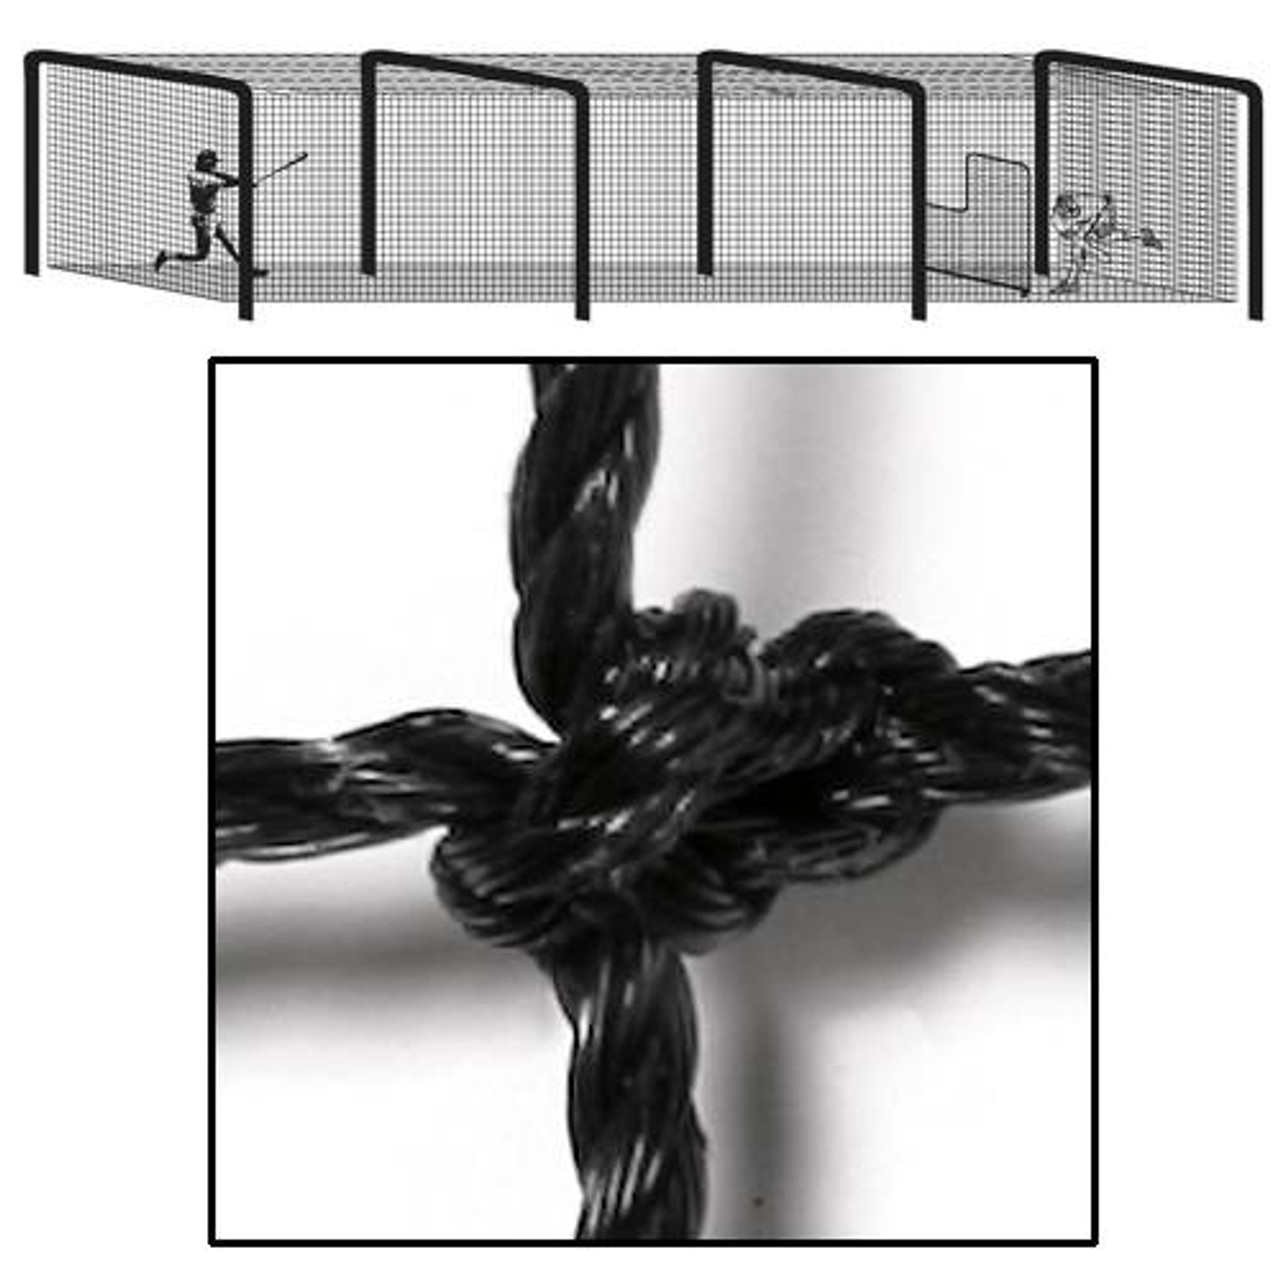 Baseball Pro Batting Tunnel Net 70 x12 x 12